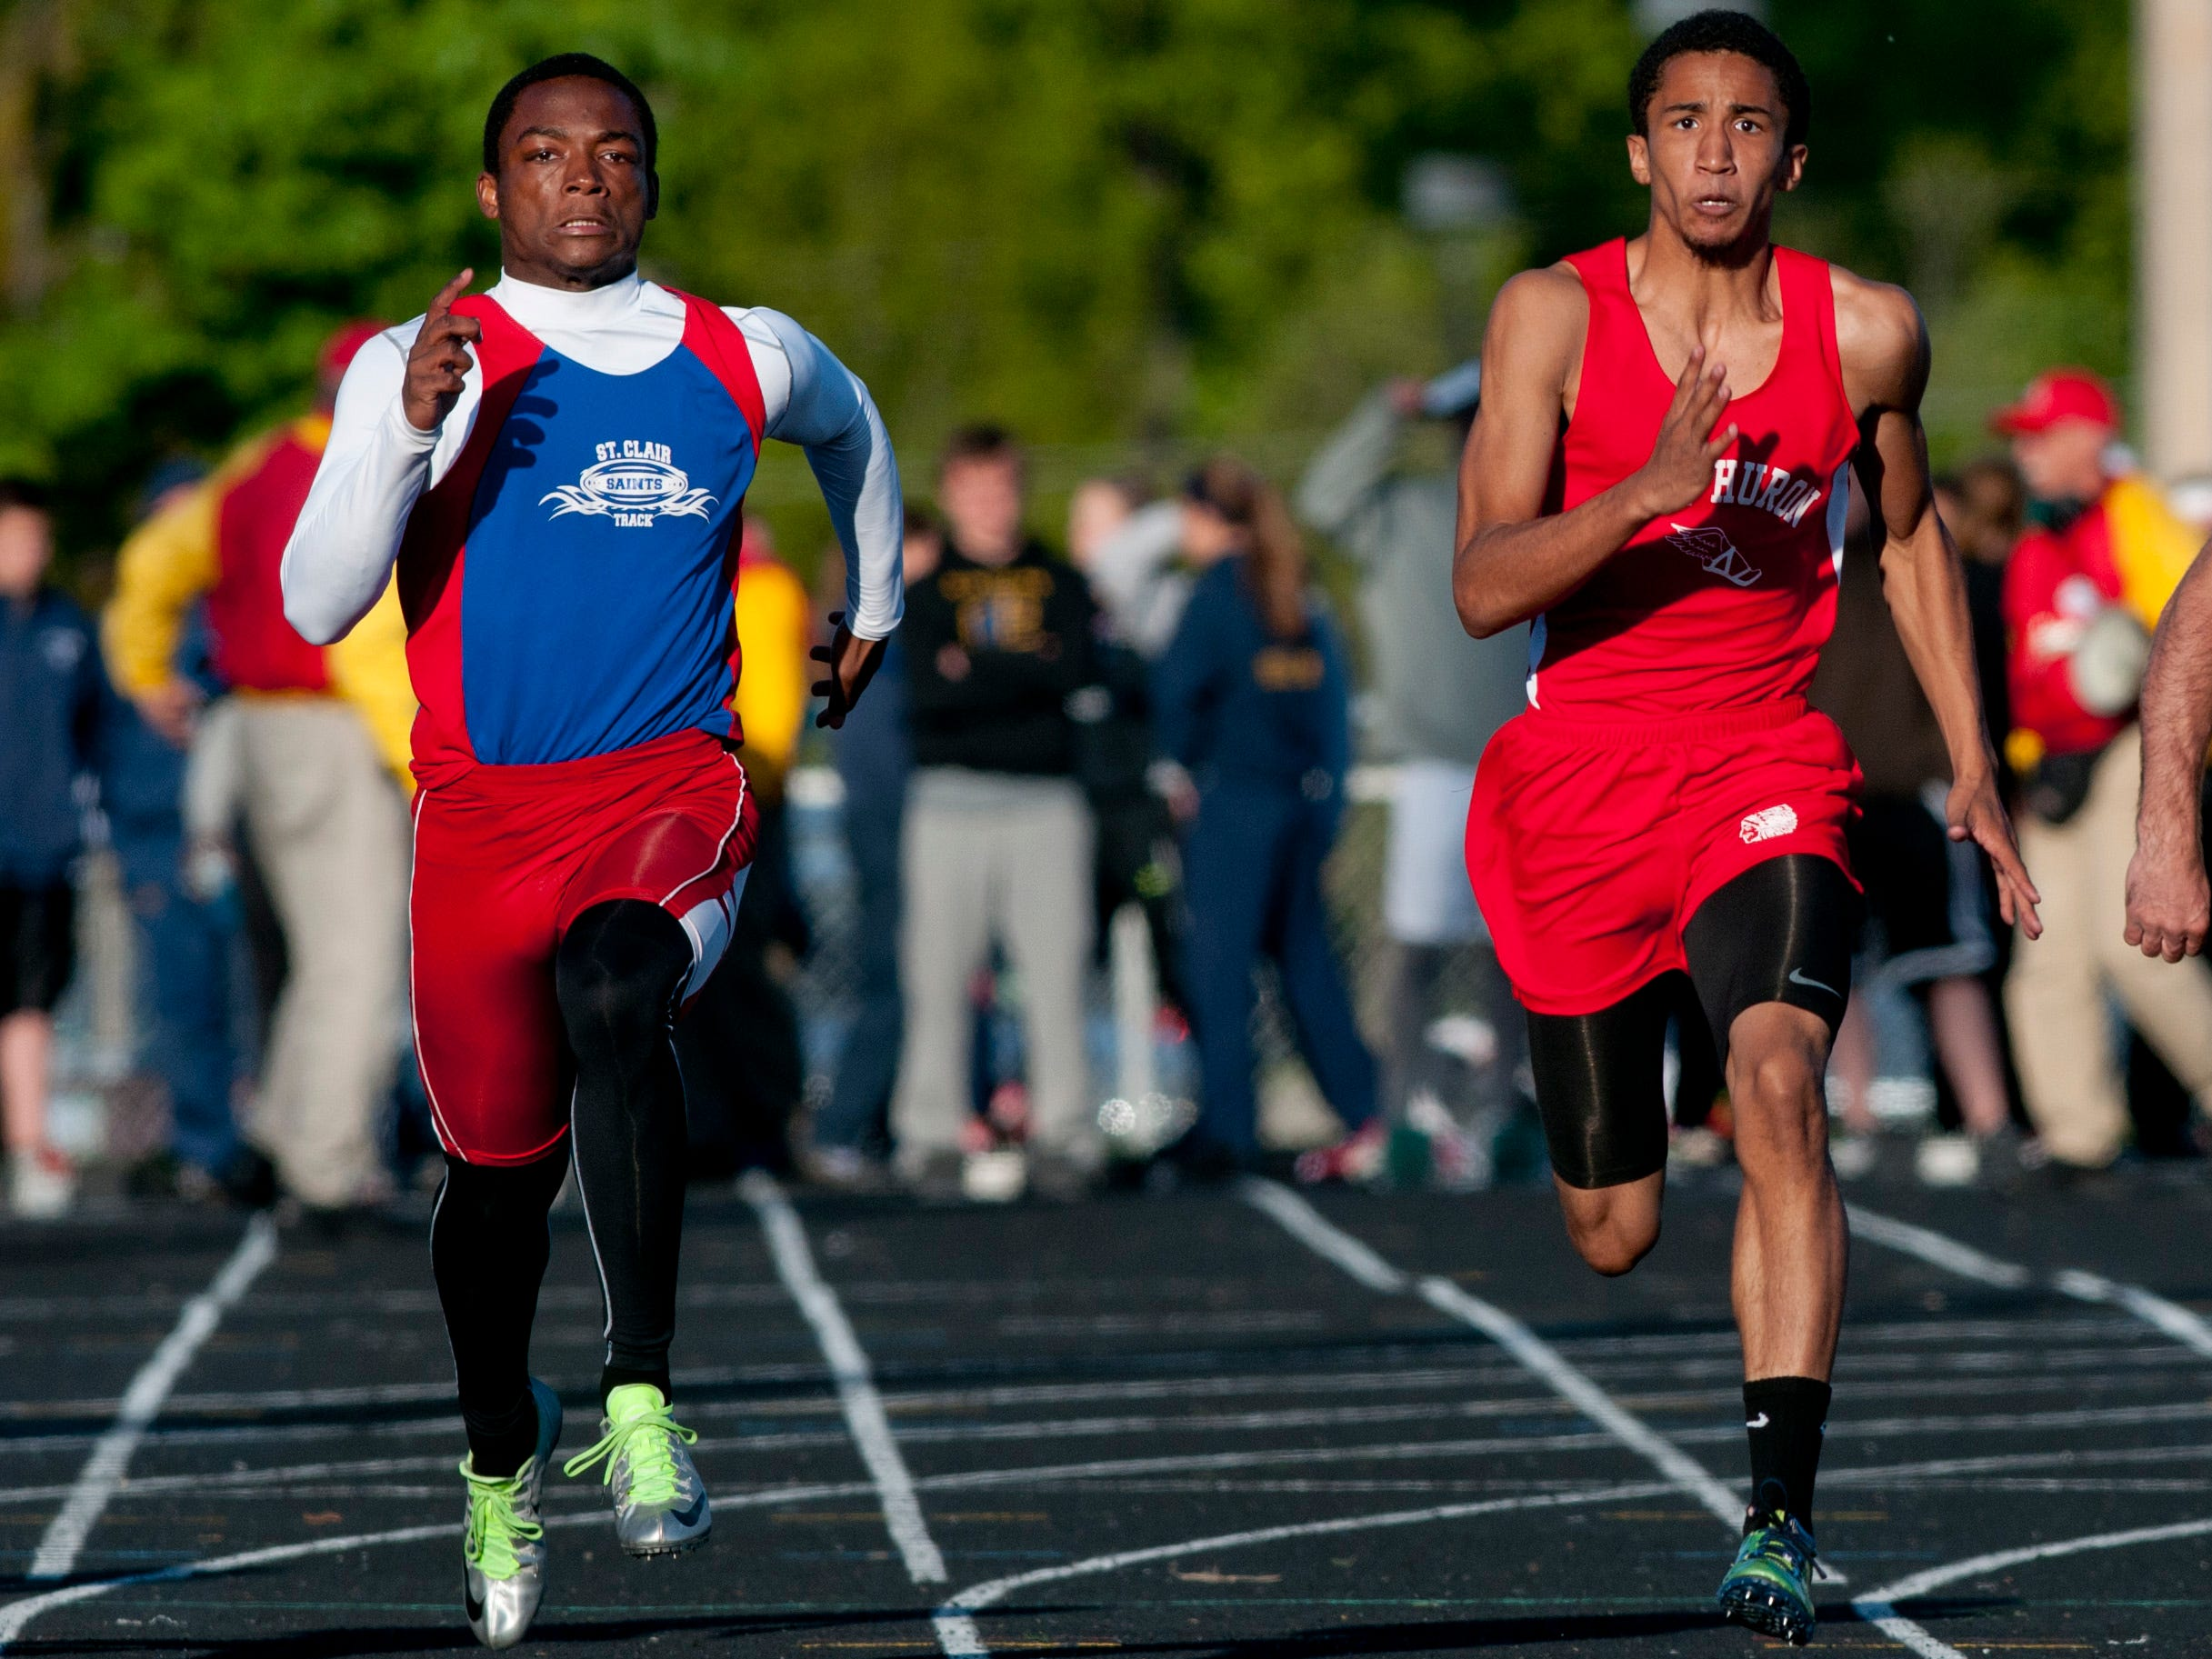 St. Clair sophomore Cameron Williams and Port Huron senior Nick Pierce compete in the 100-meter dash during the Meet of Champions Friday, May 22, 2015 at Marysville High School.